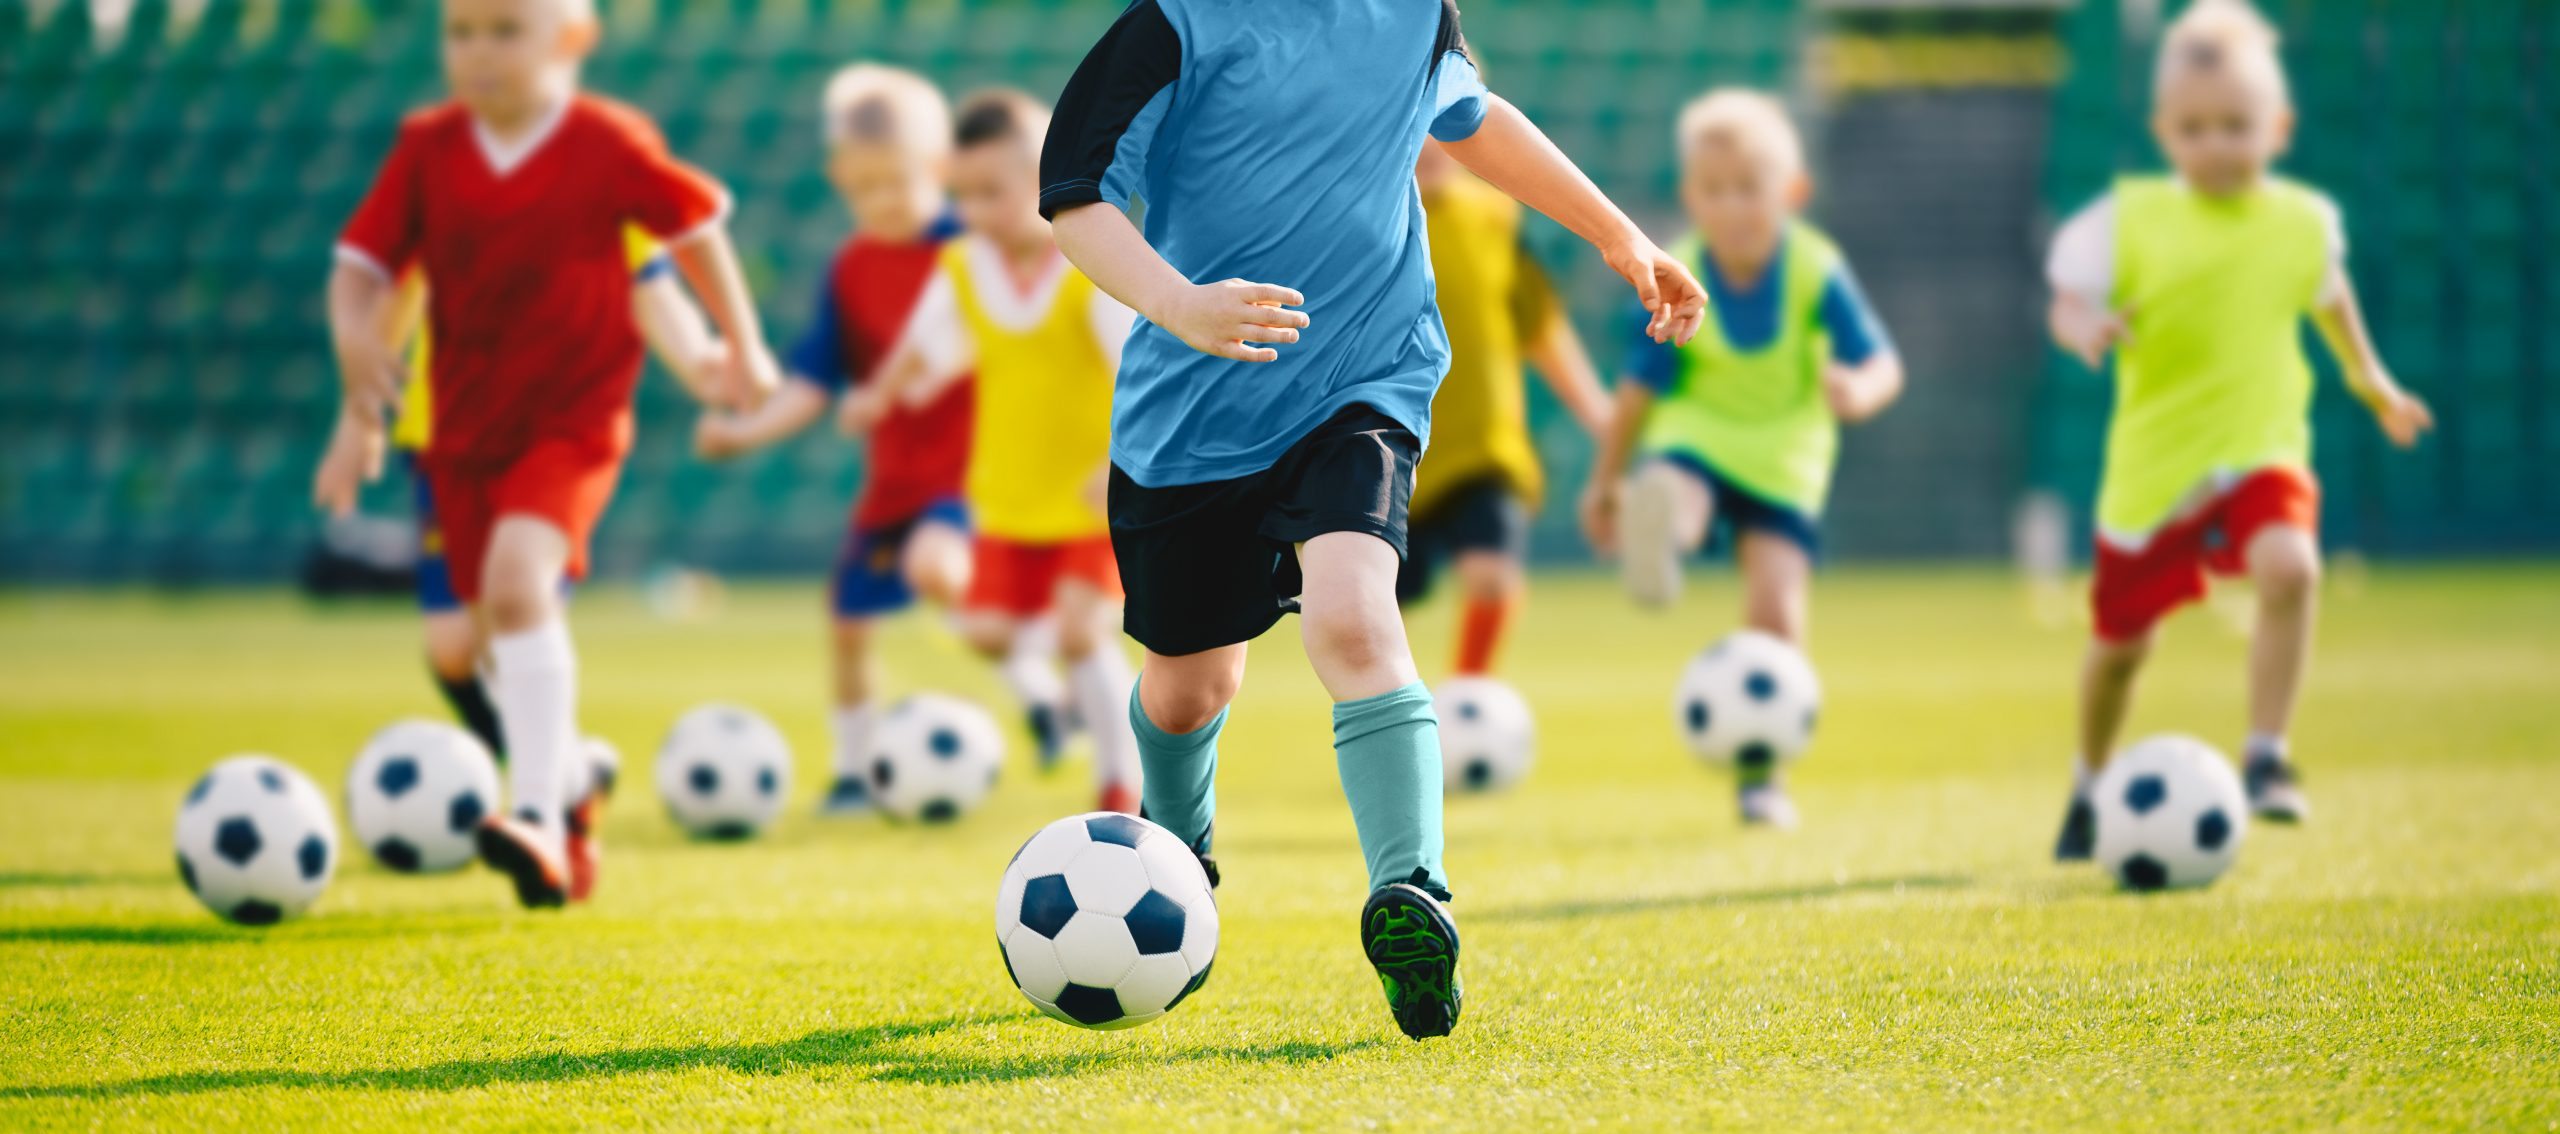 Kick Up The Fun With Soccer For Kids At The Y!